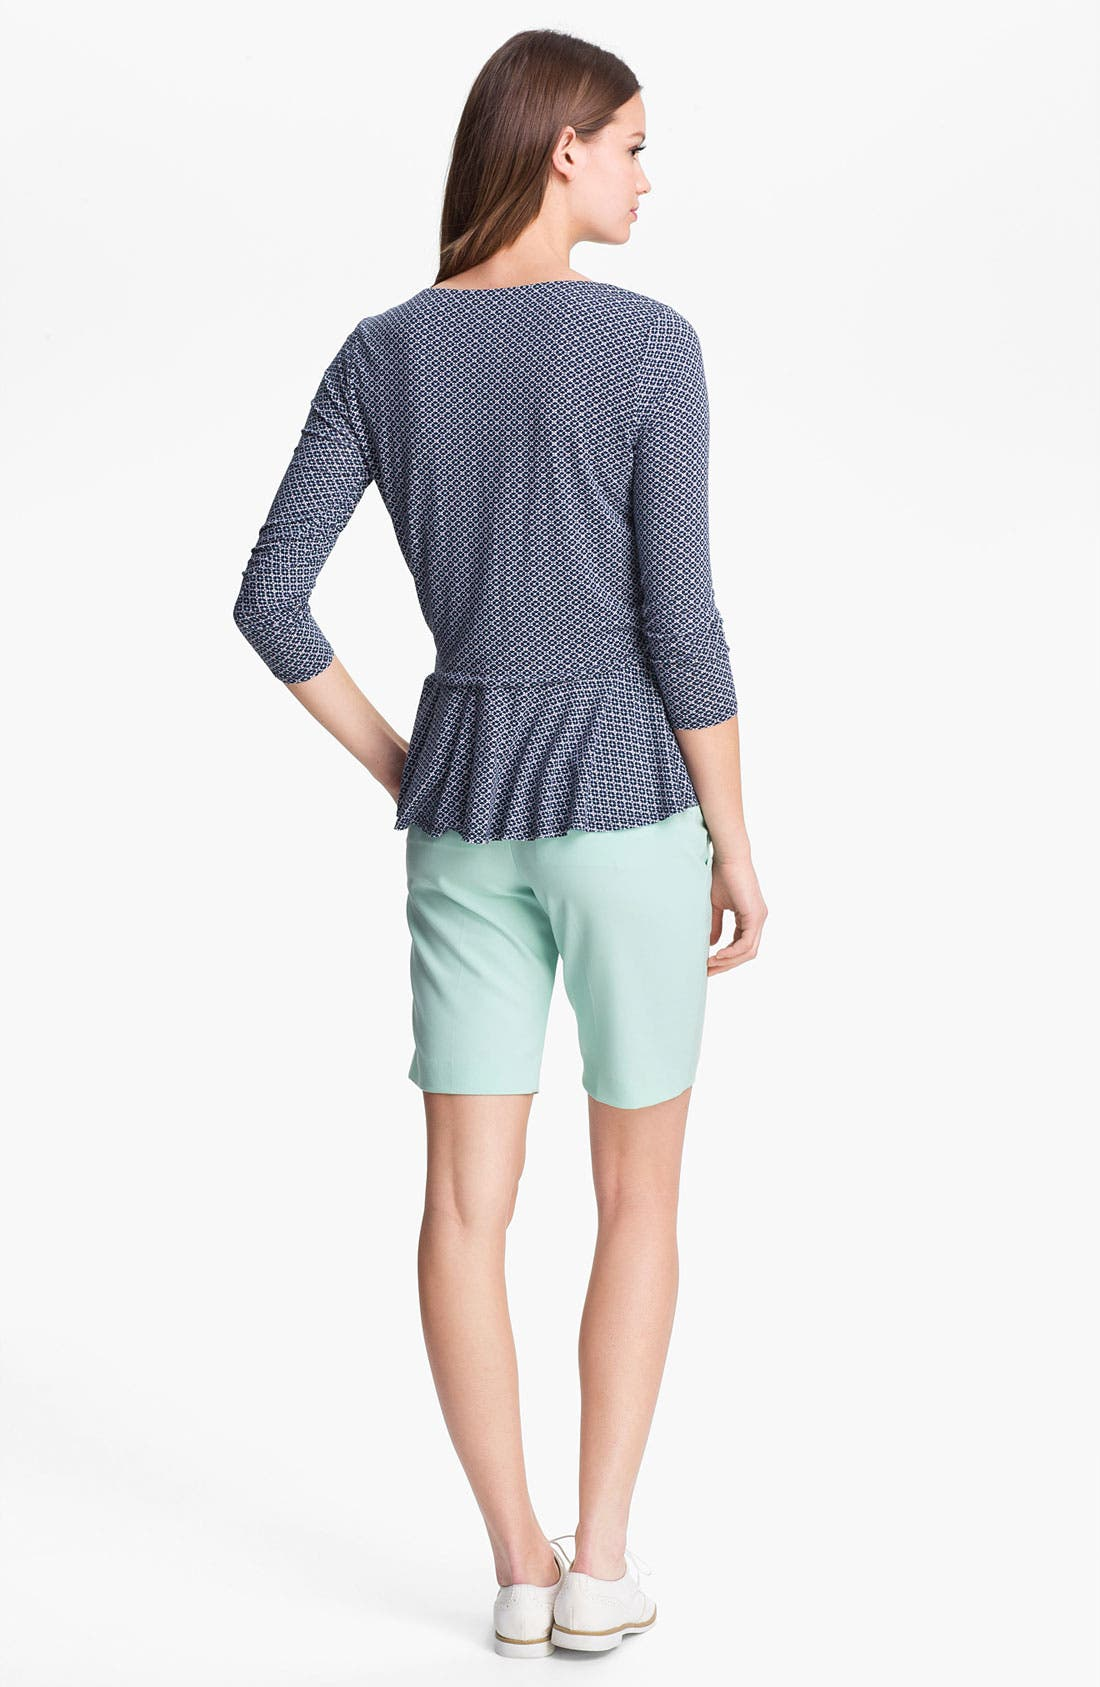 Bermuda Shorts,                             Alternate thumbnail 2, color,                             300